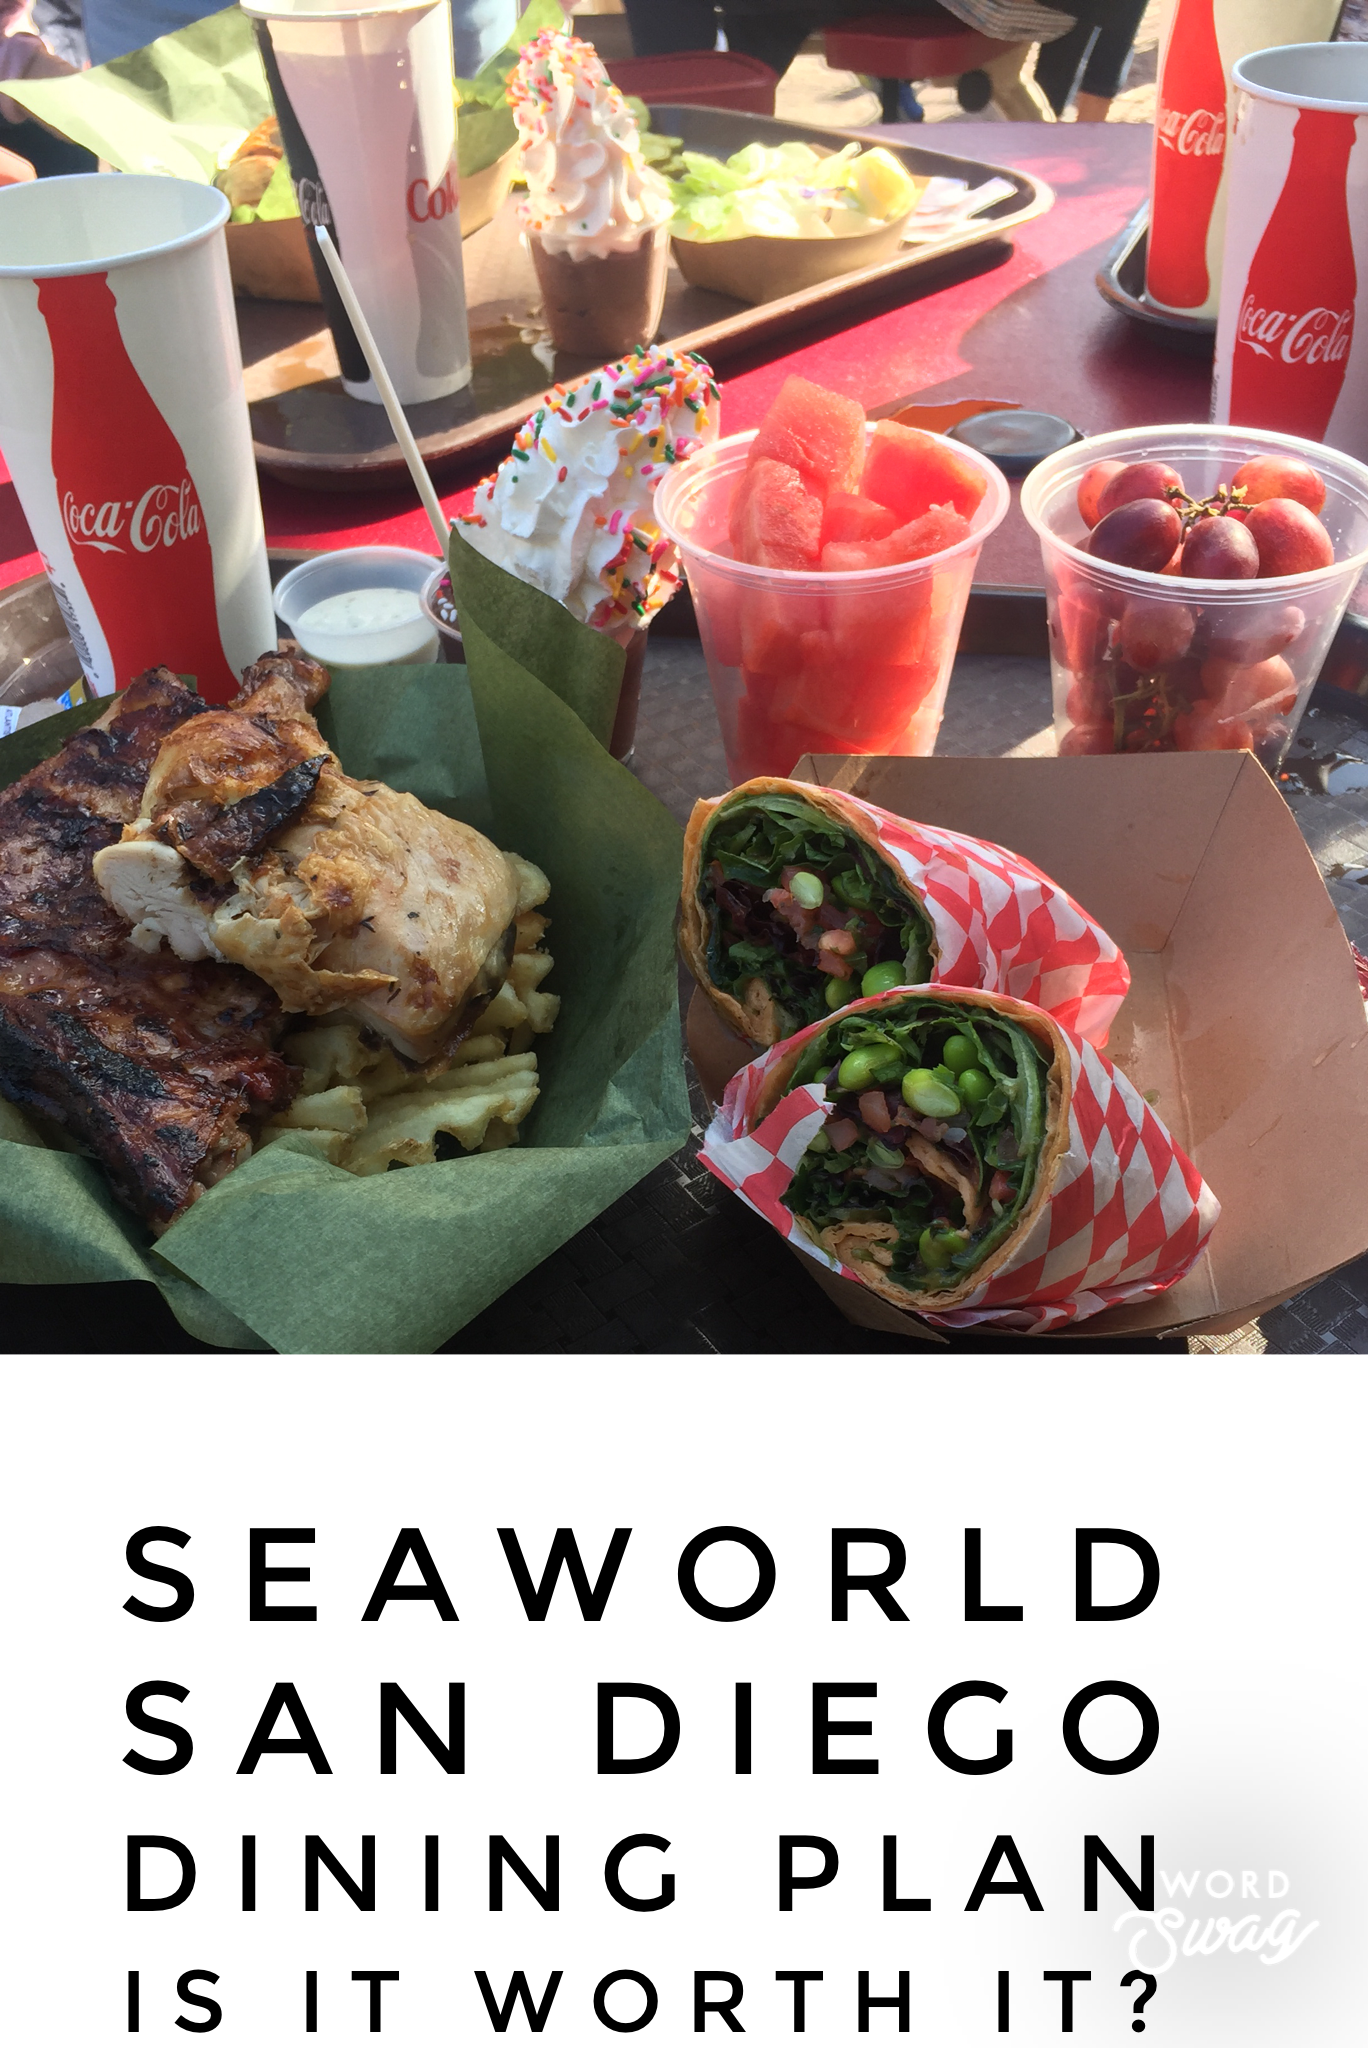 Seaworld San Diego Vacation Planning Away In 2020 Seaworld San Diego Sea World San Diego Vacation